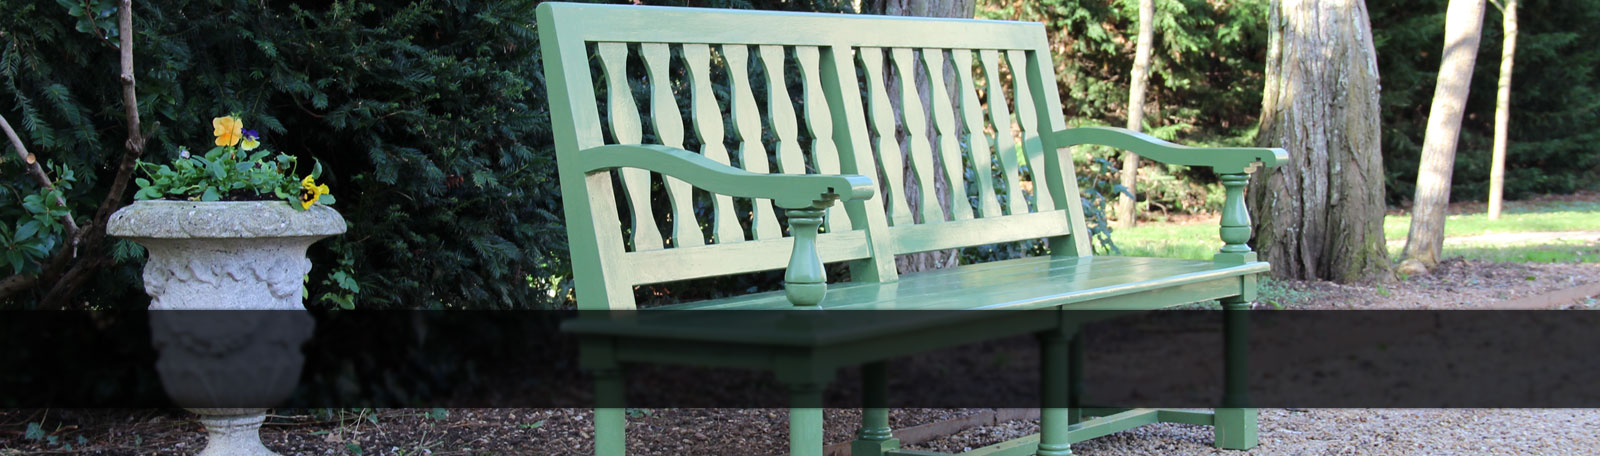 1760 bench: garden furniture